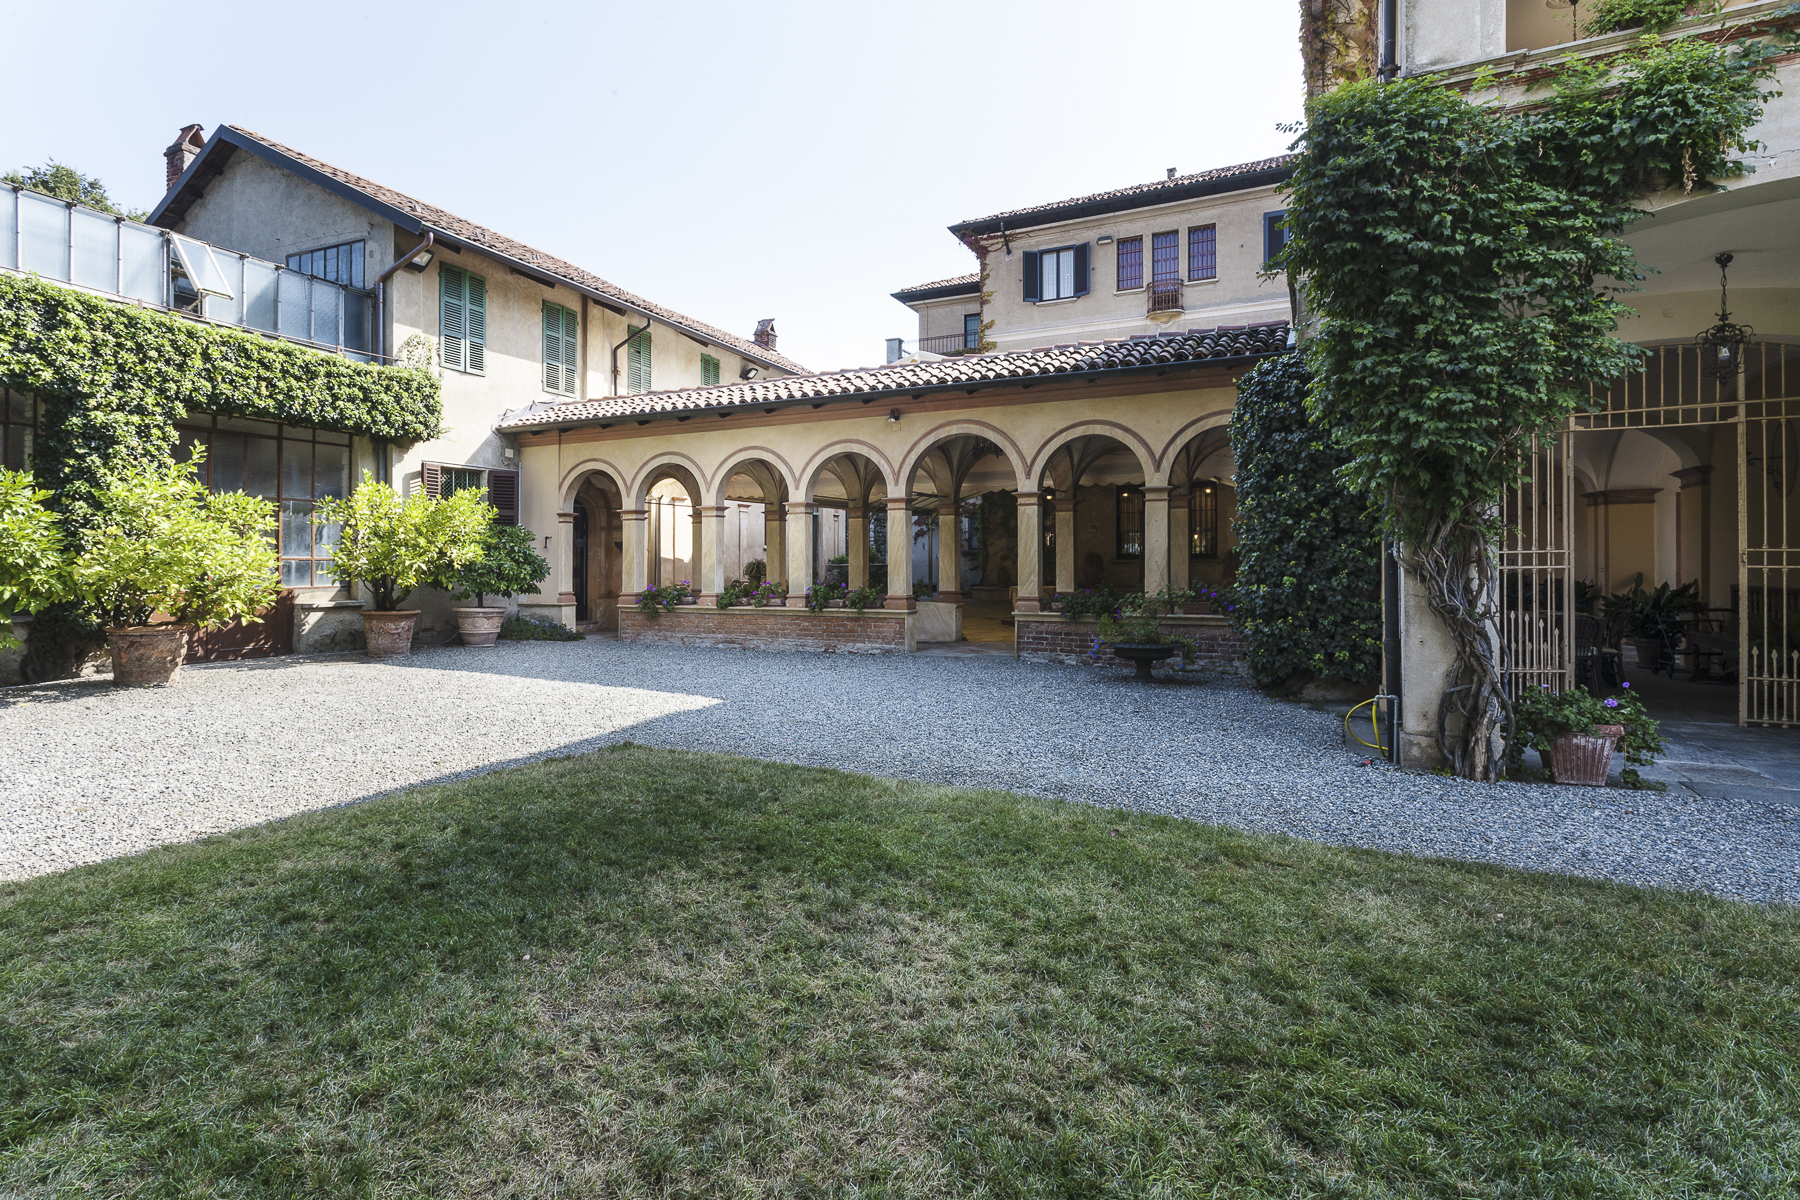 Additional photo for property listing at Unique Villa with swimming pool Piazza Rampone Roppolo, Belluno 13883 Italie